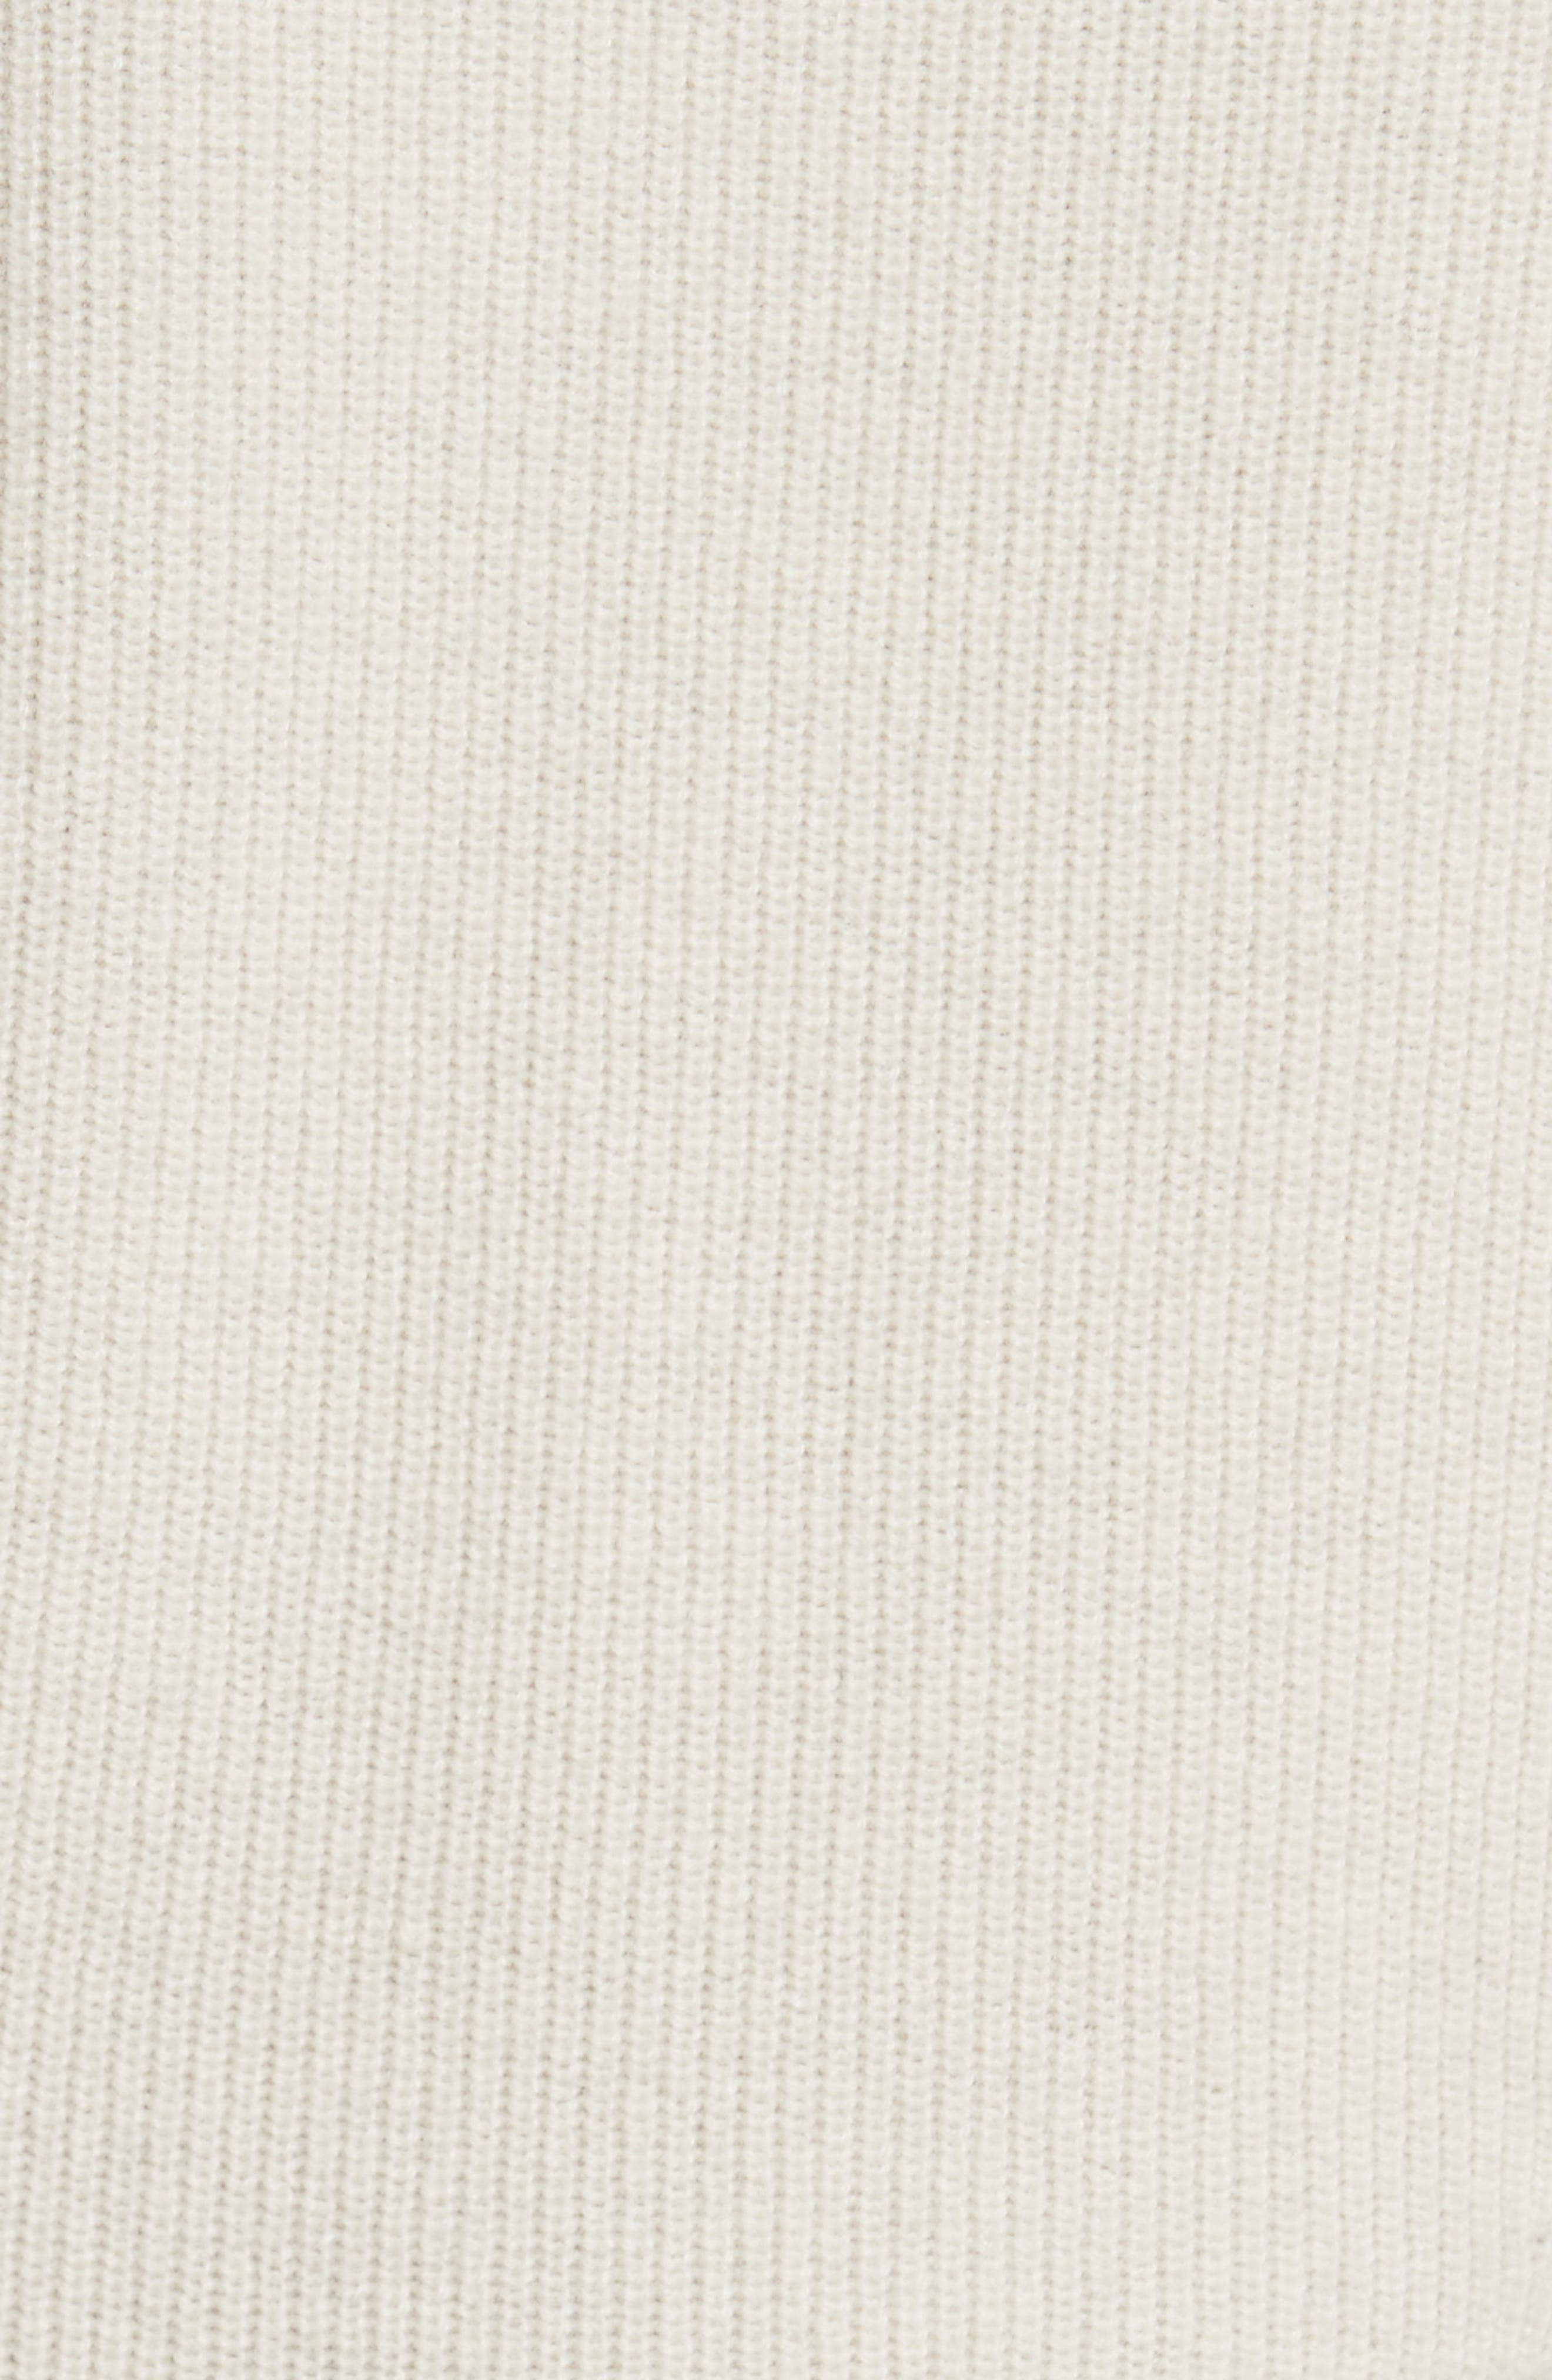 Raleigh Cashmere Peplum Sweater,                             Alternate thumbnail 15, color,